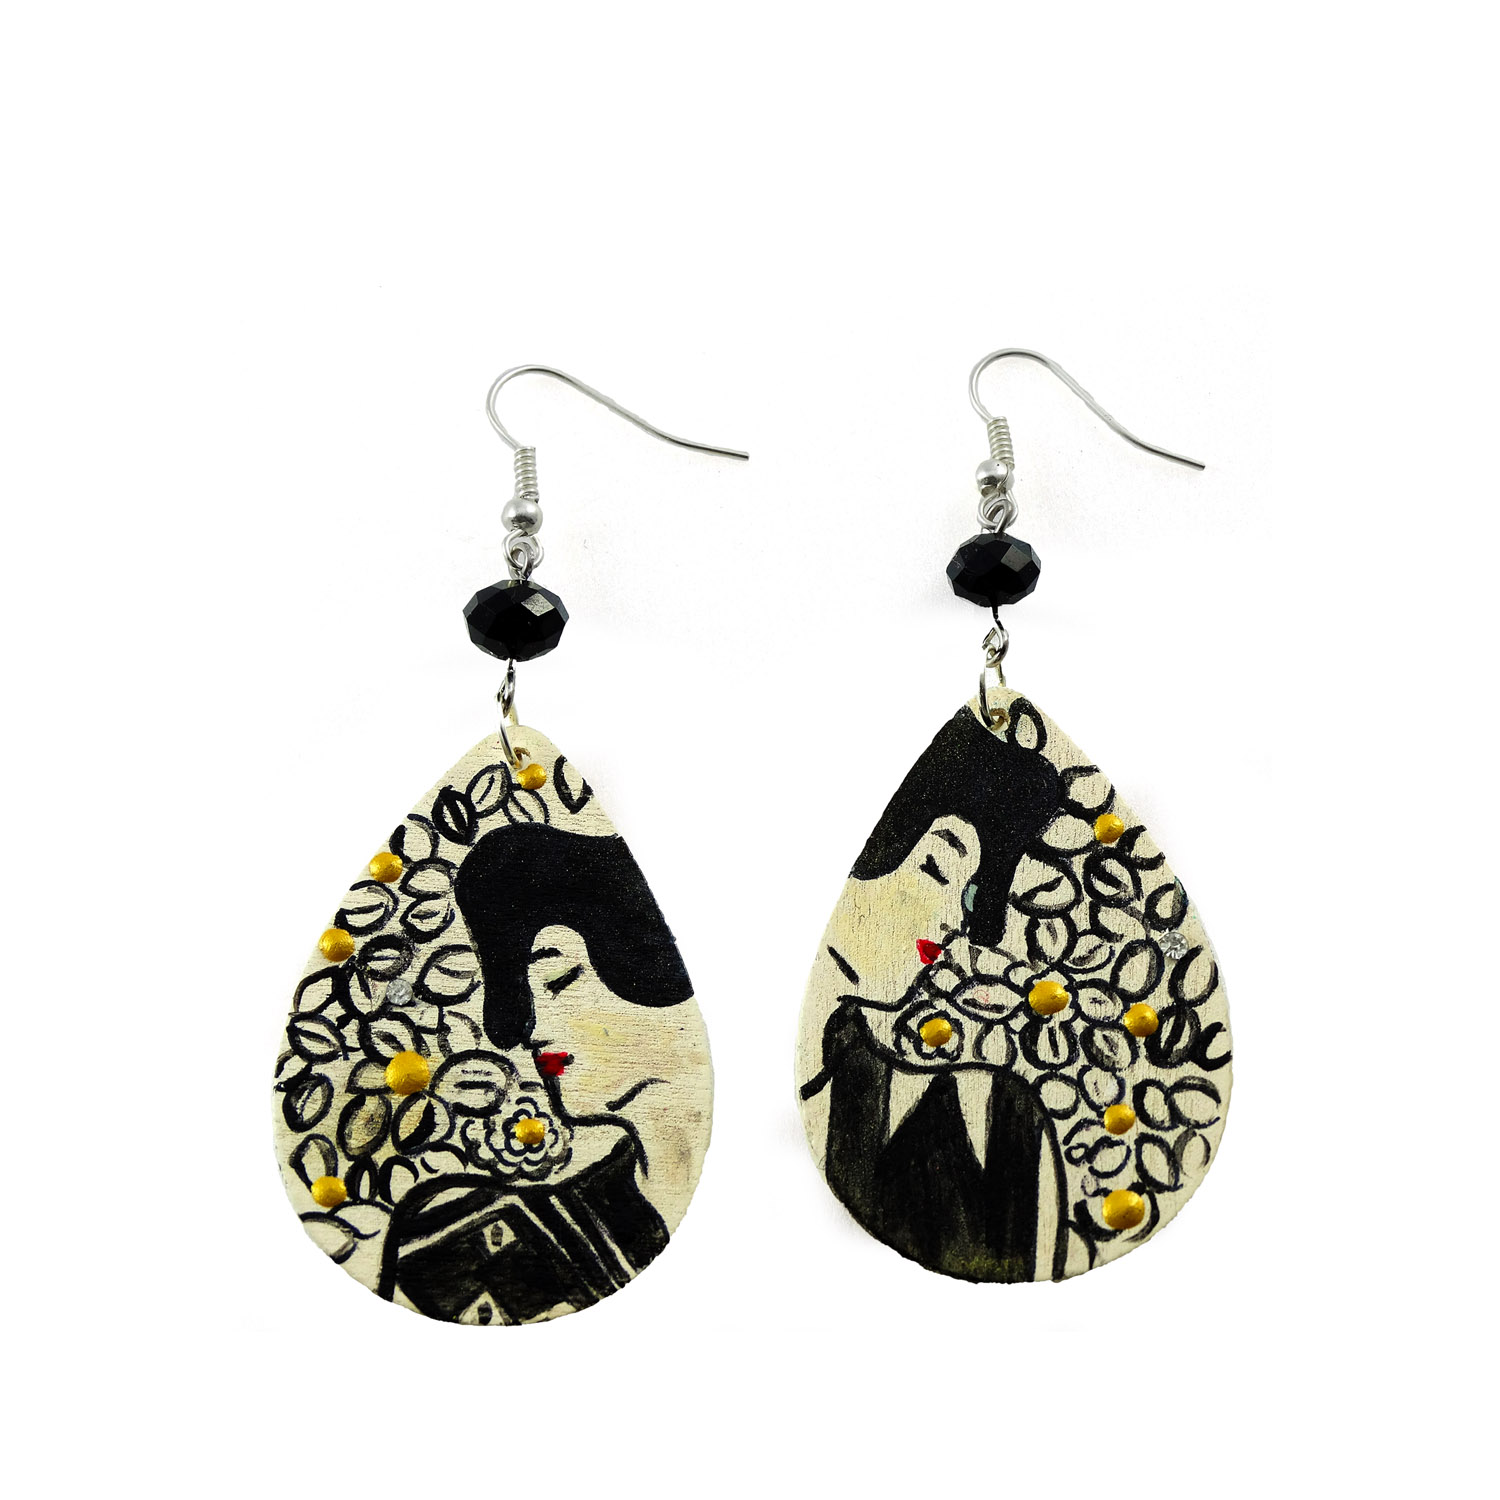 Hand-painted earrings - Two silhouettes by Klimt